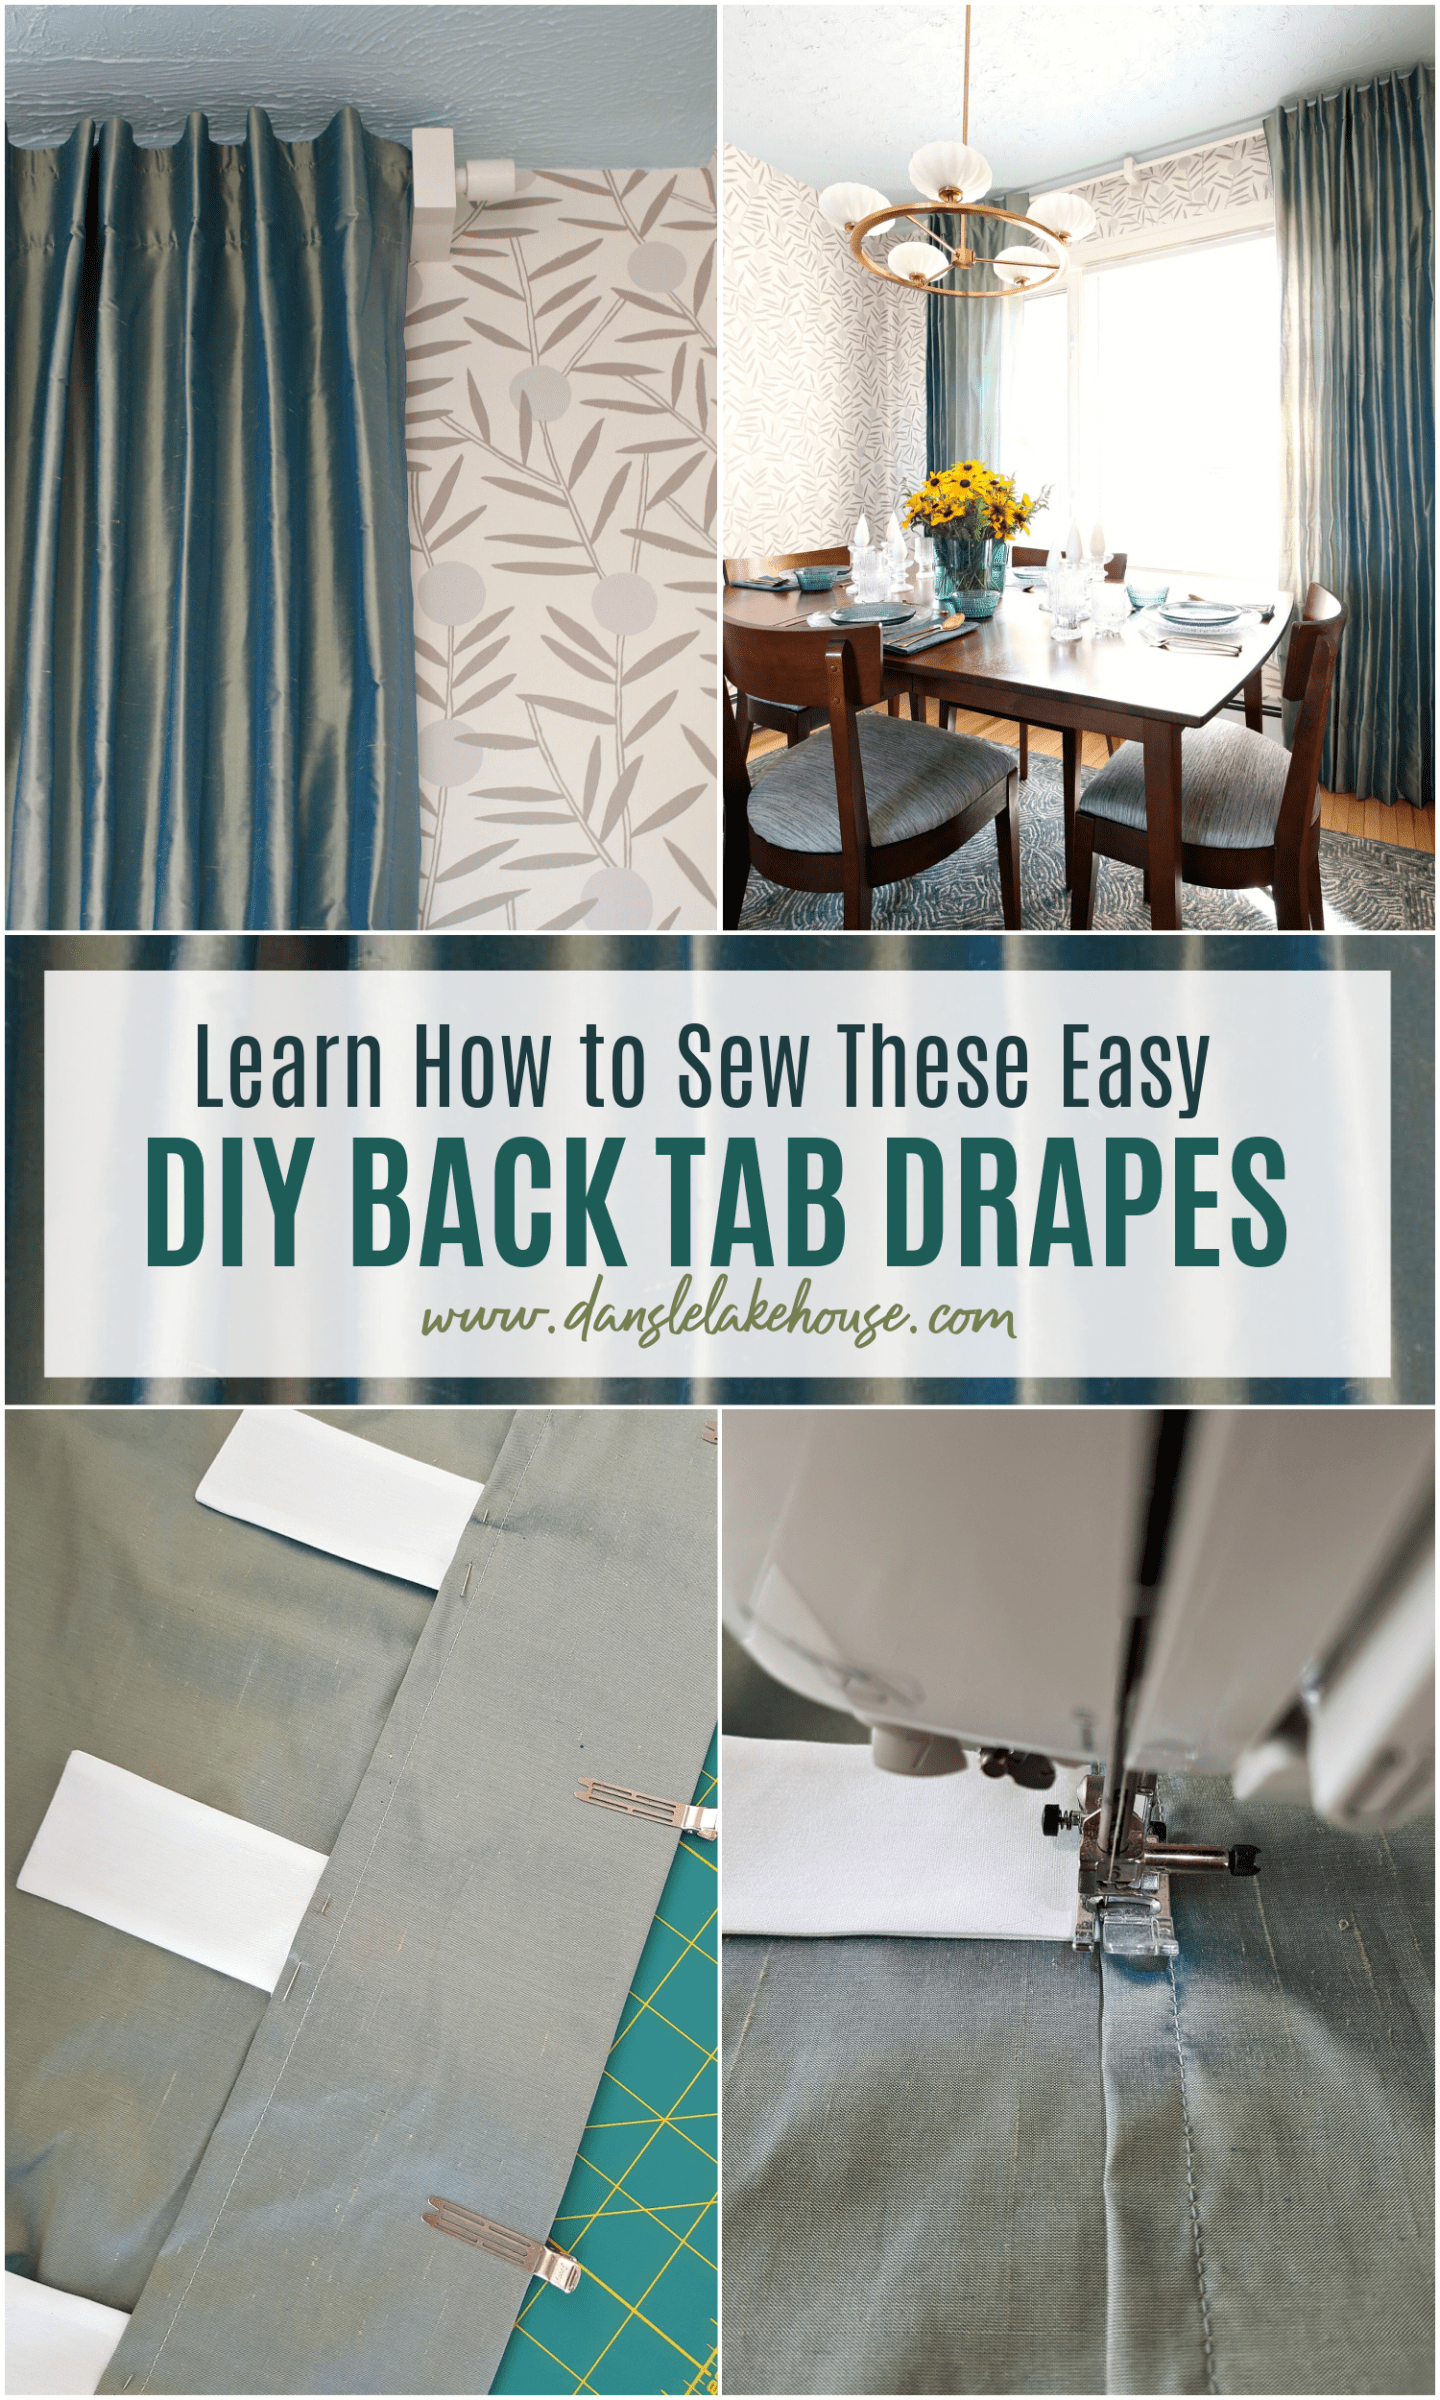 Learn How to Sew These Easy DIY Back Tab Drapes